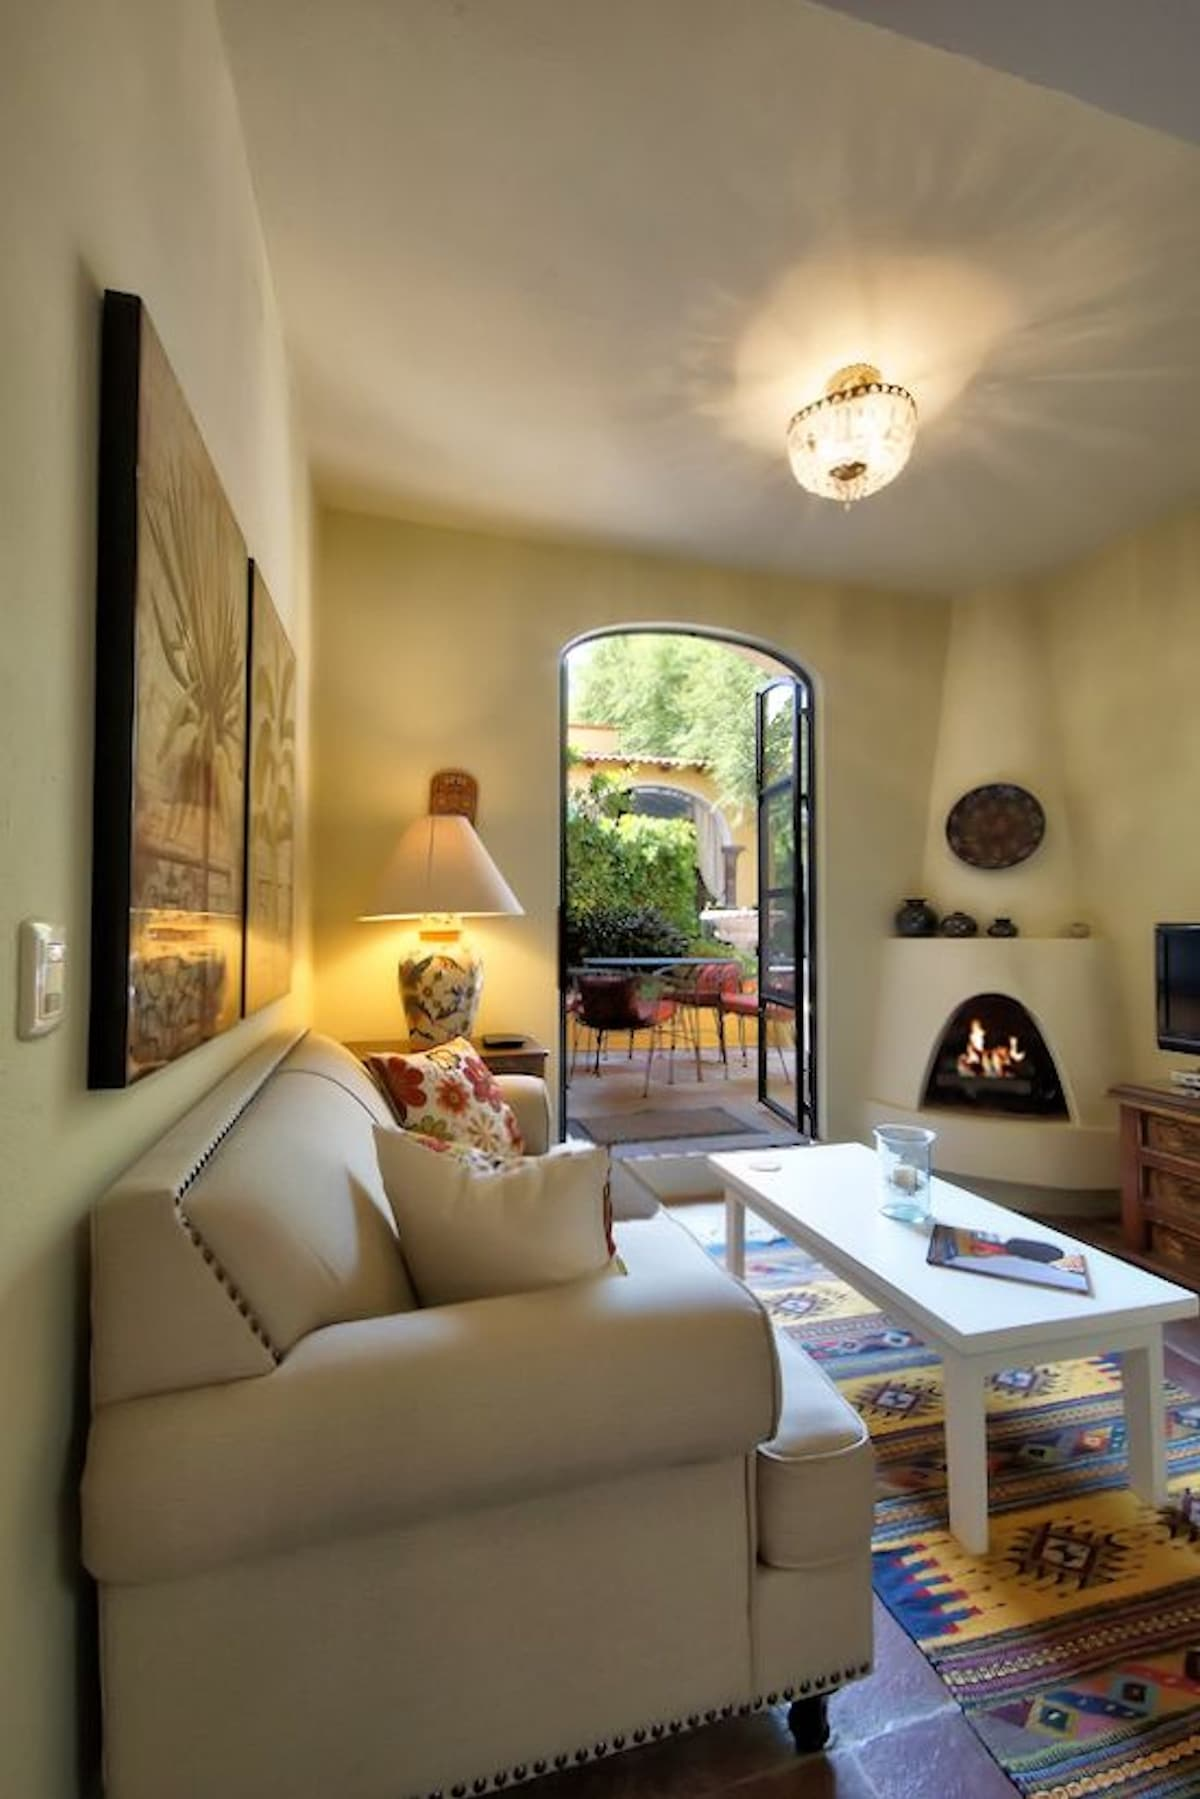 The living room features a gas fireplace for those cool winter morning and evenings.  Access to your own garden patio is off the living room and is very private. Feel free to pick any oranges from the orange tree.